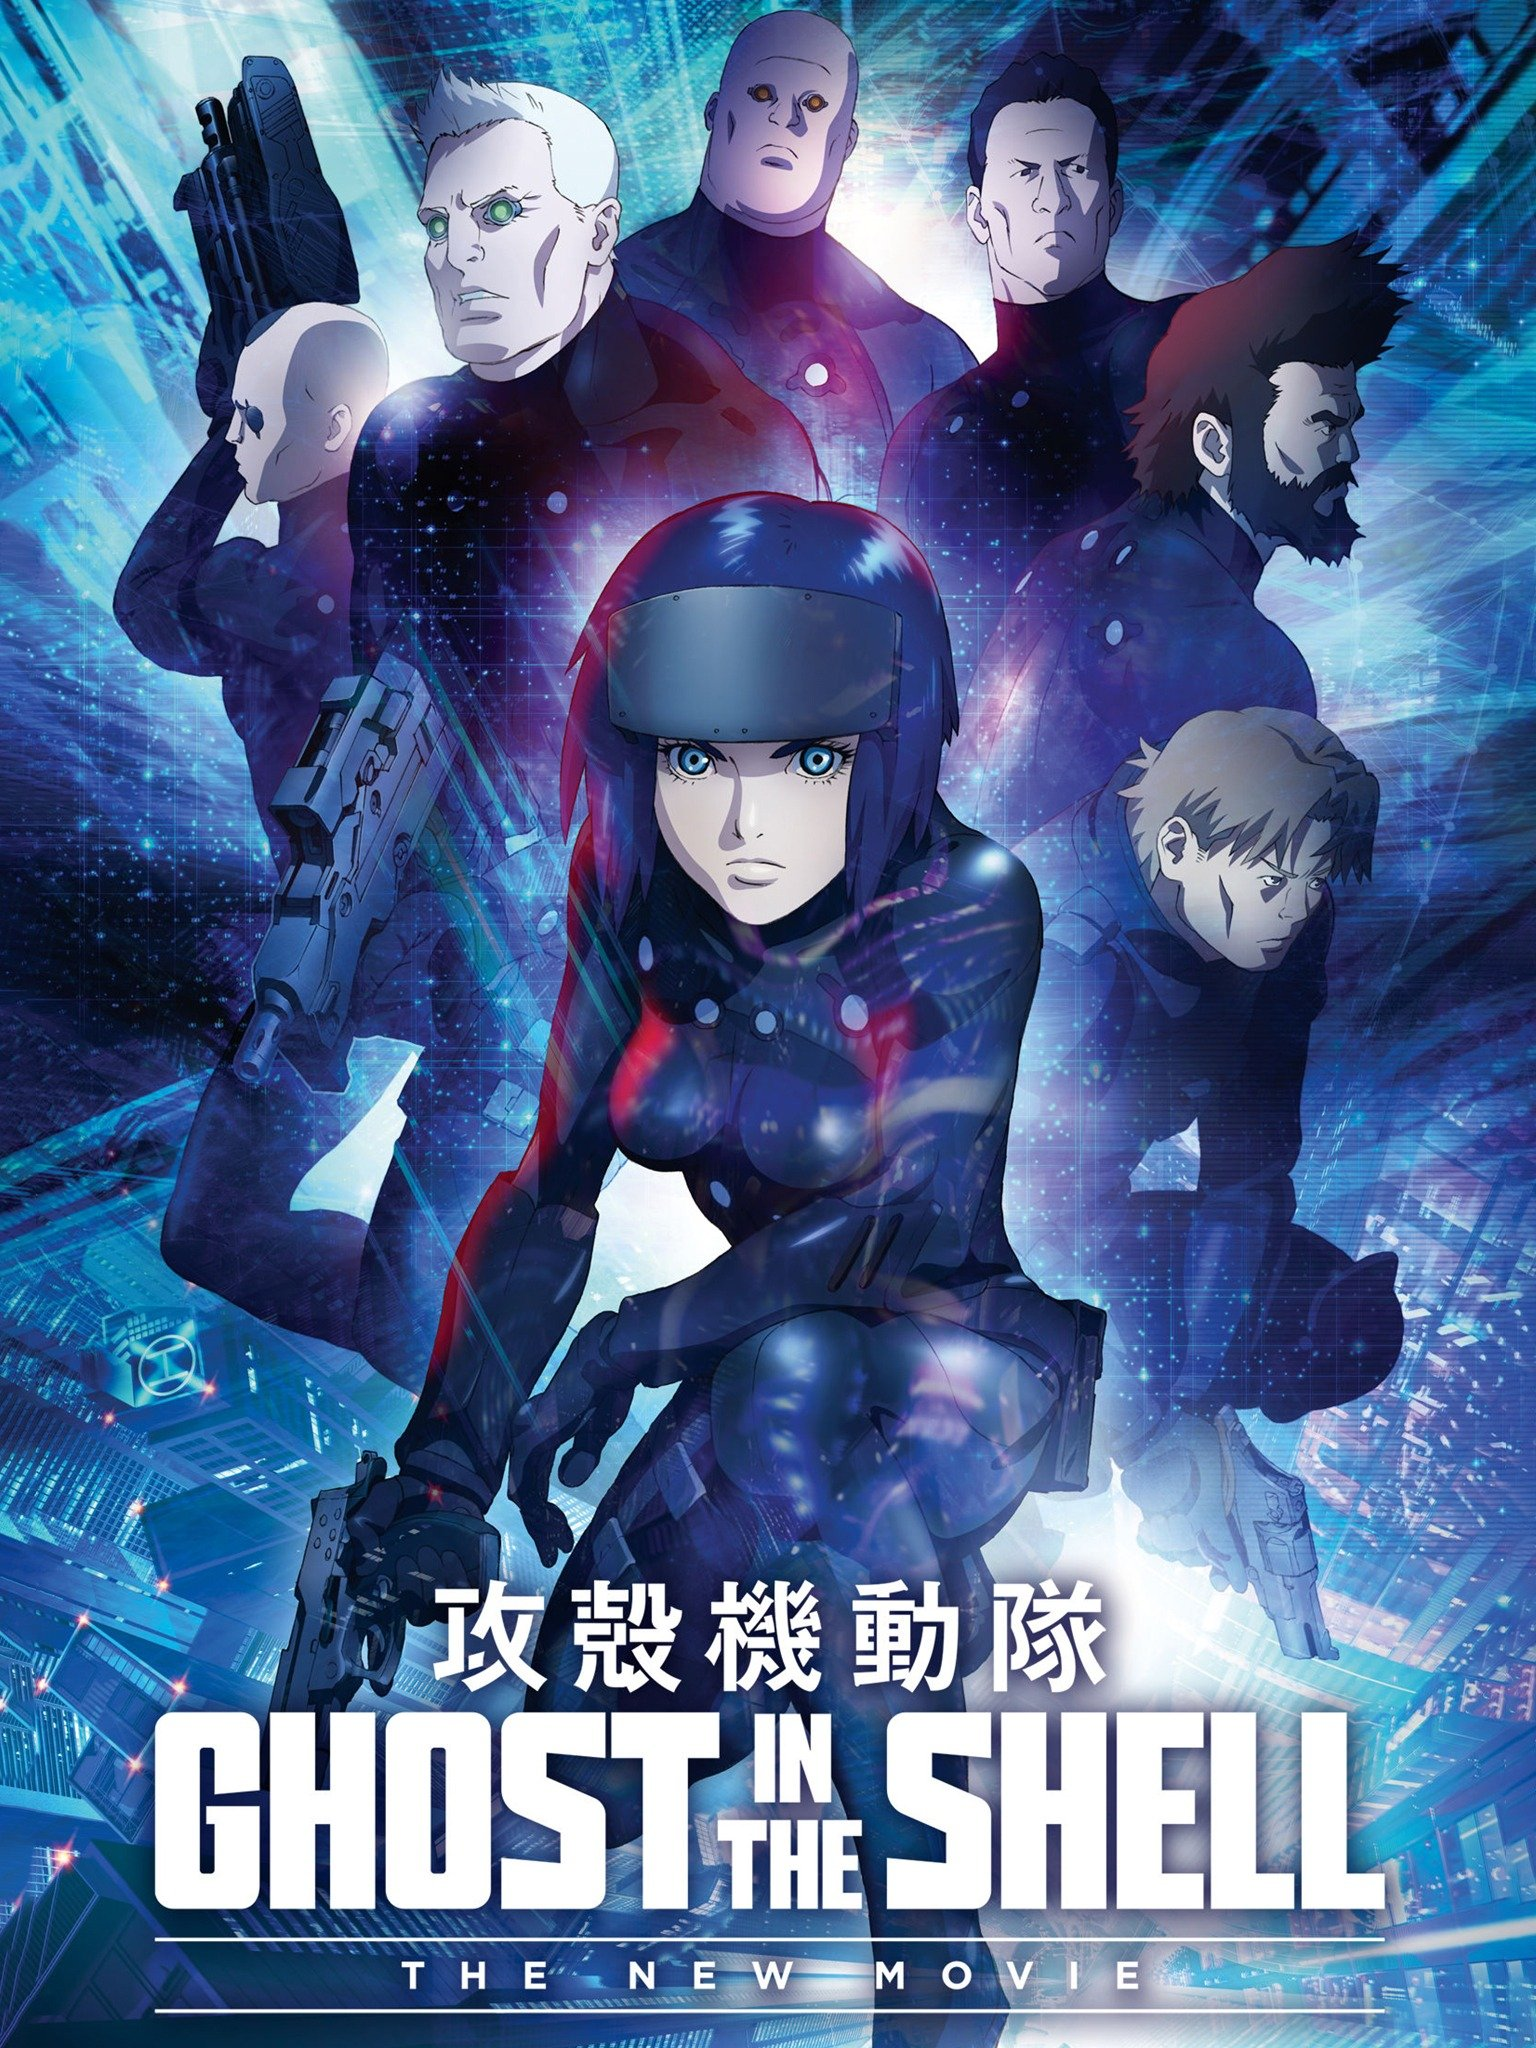 Ghost In The Shell The New Movie 2015 Rotten Tomatoes